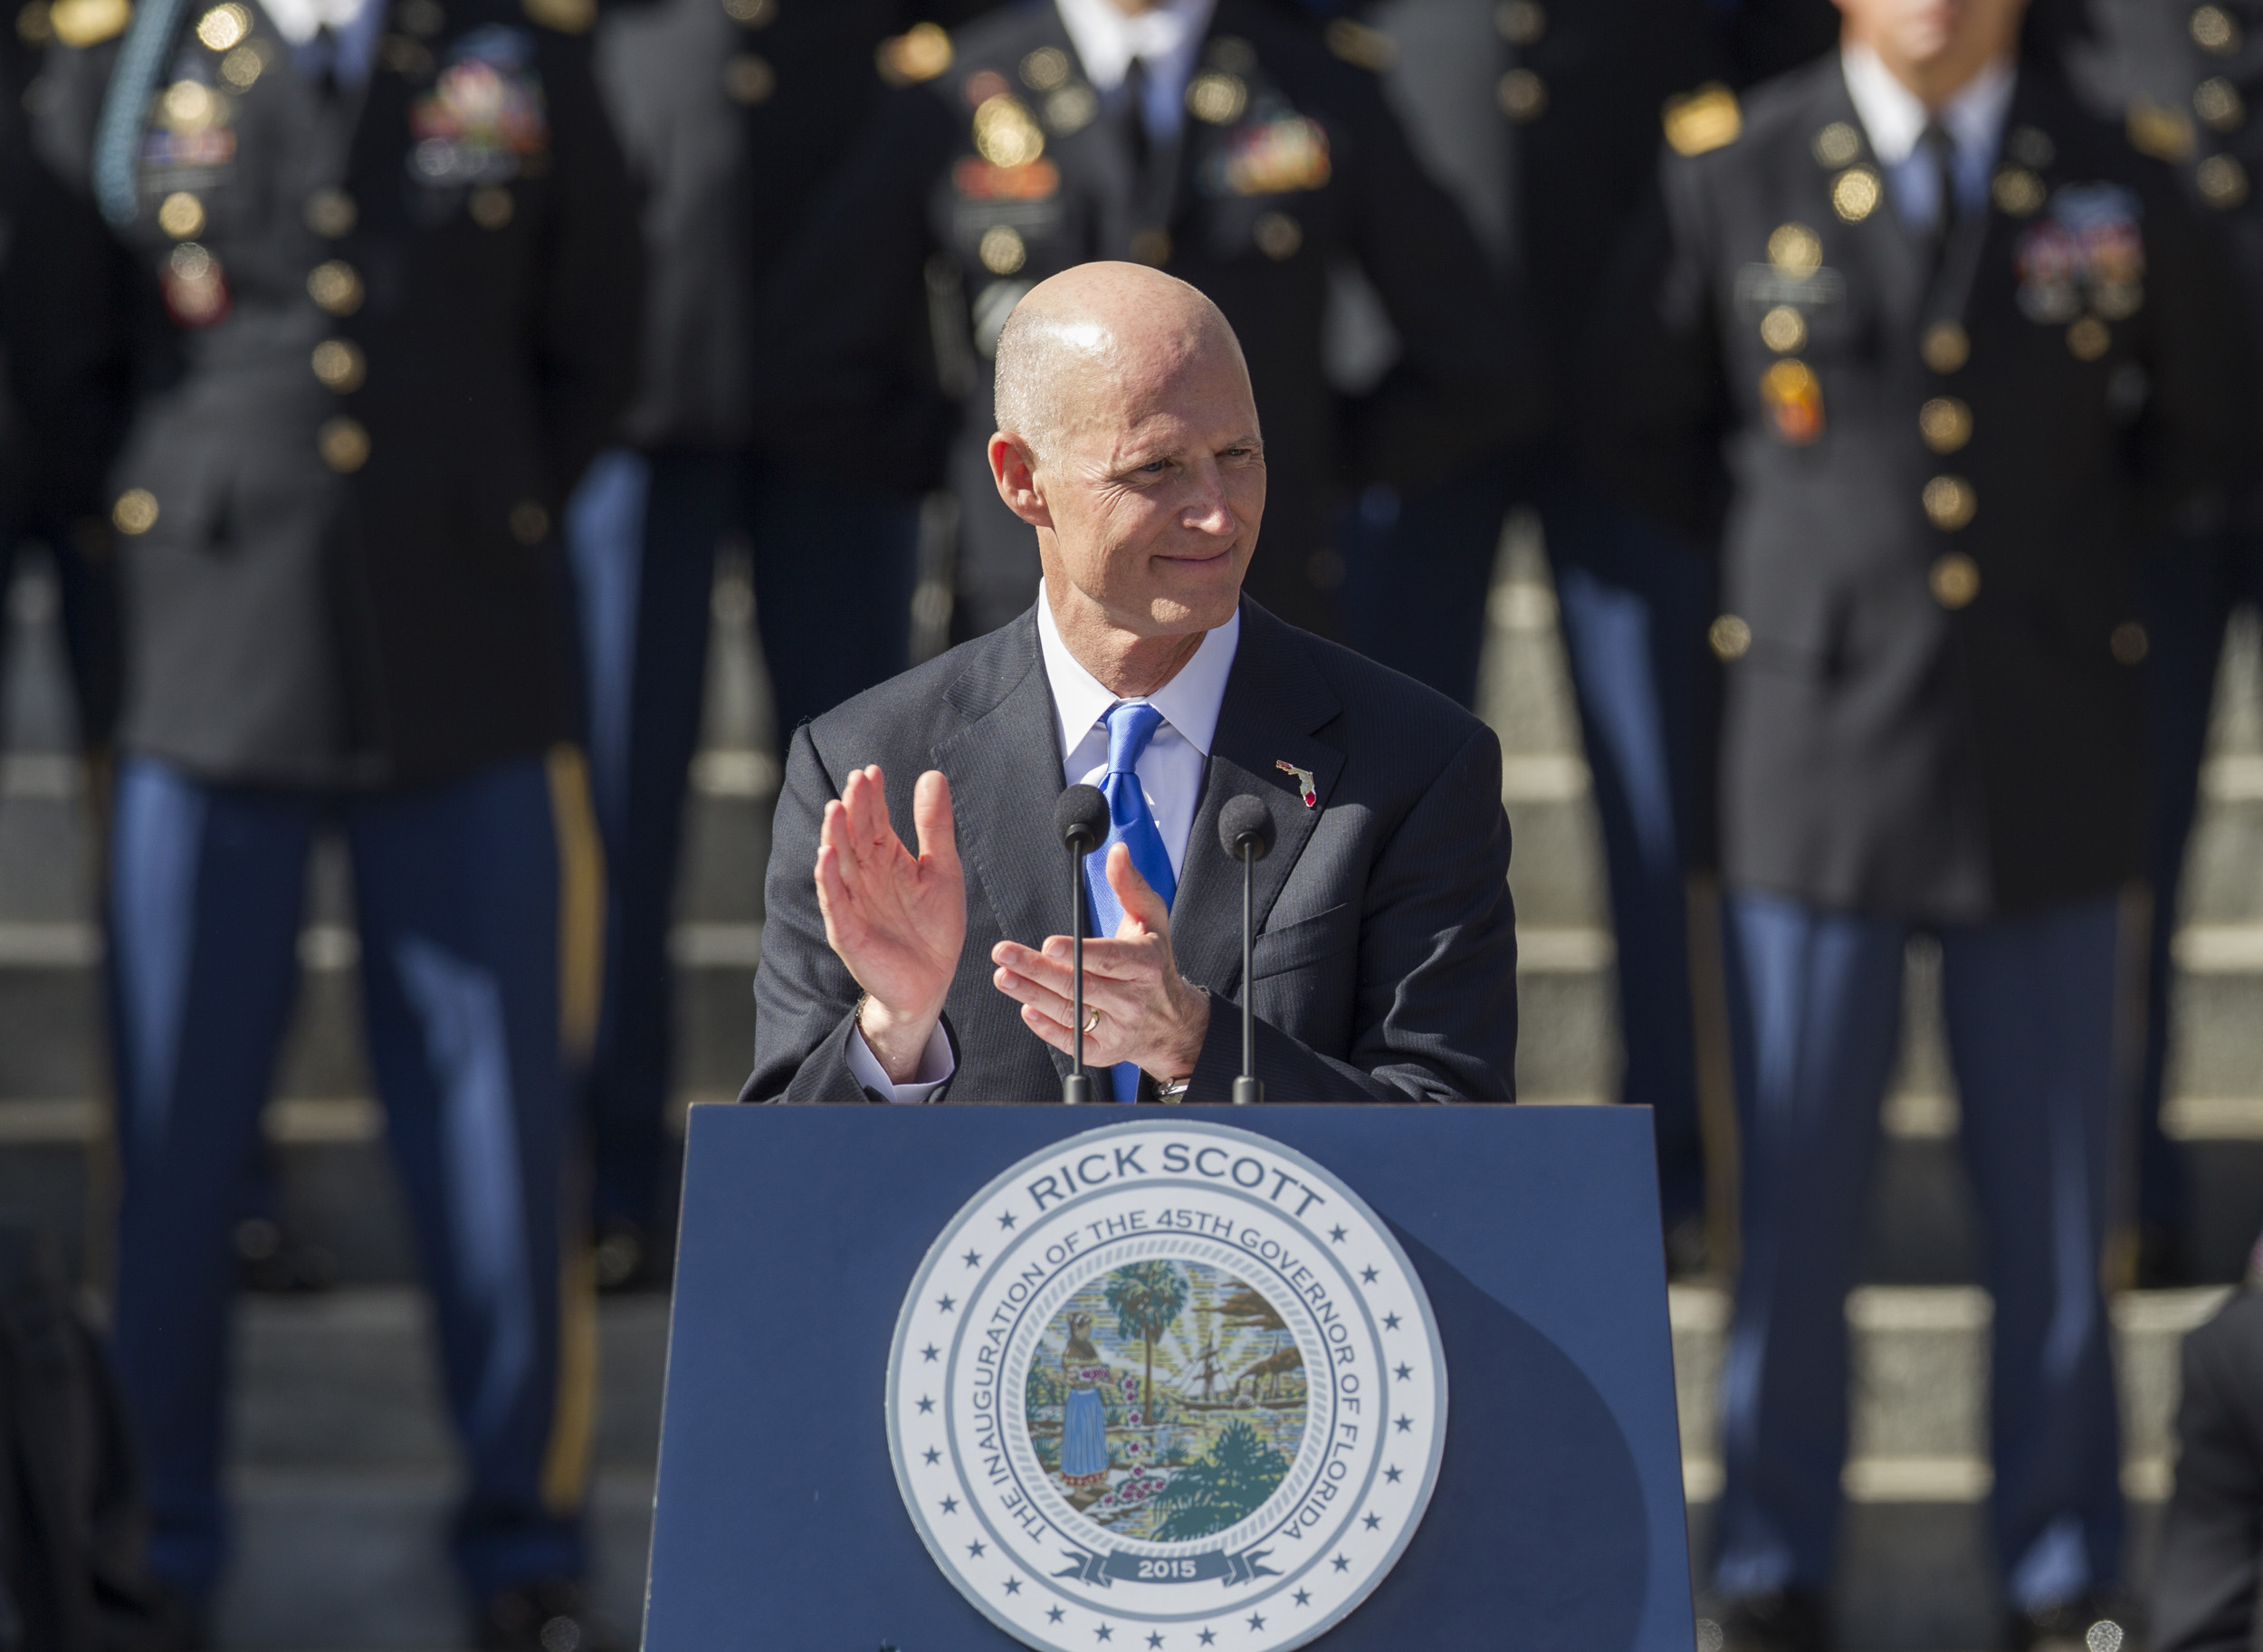 Florida Governor Rick Scott applauds during his speech after the swearing in for his second term as governor of Florida at the Florida state capitol in Tallahassee, Fla. on Jan. 6, 2015.